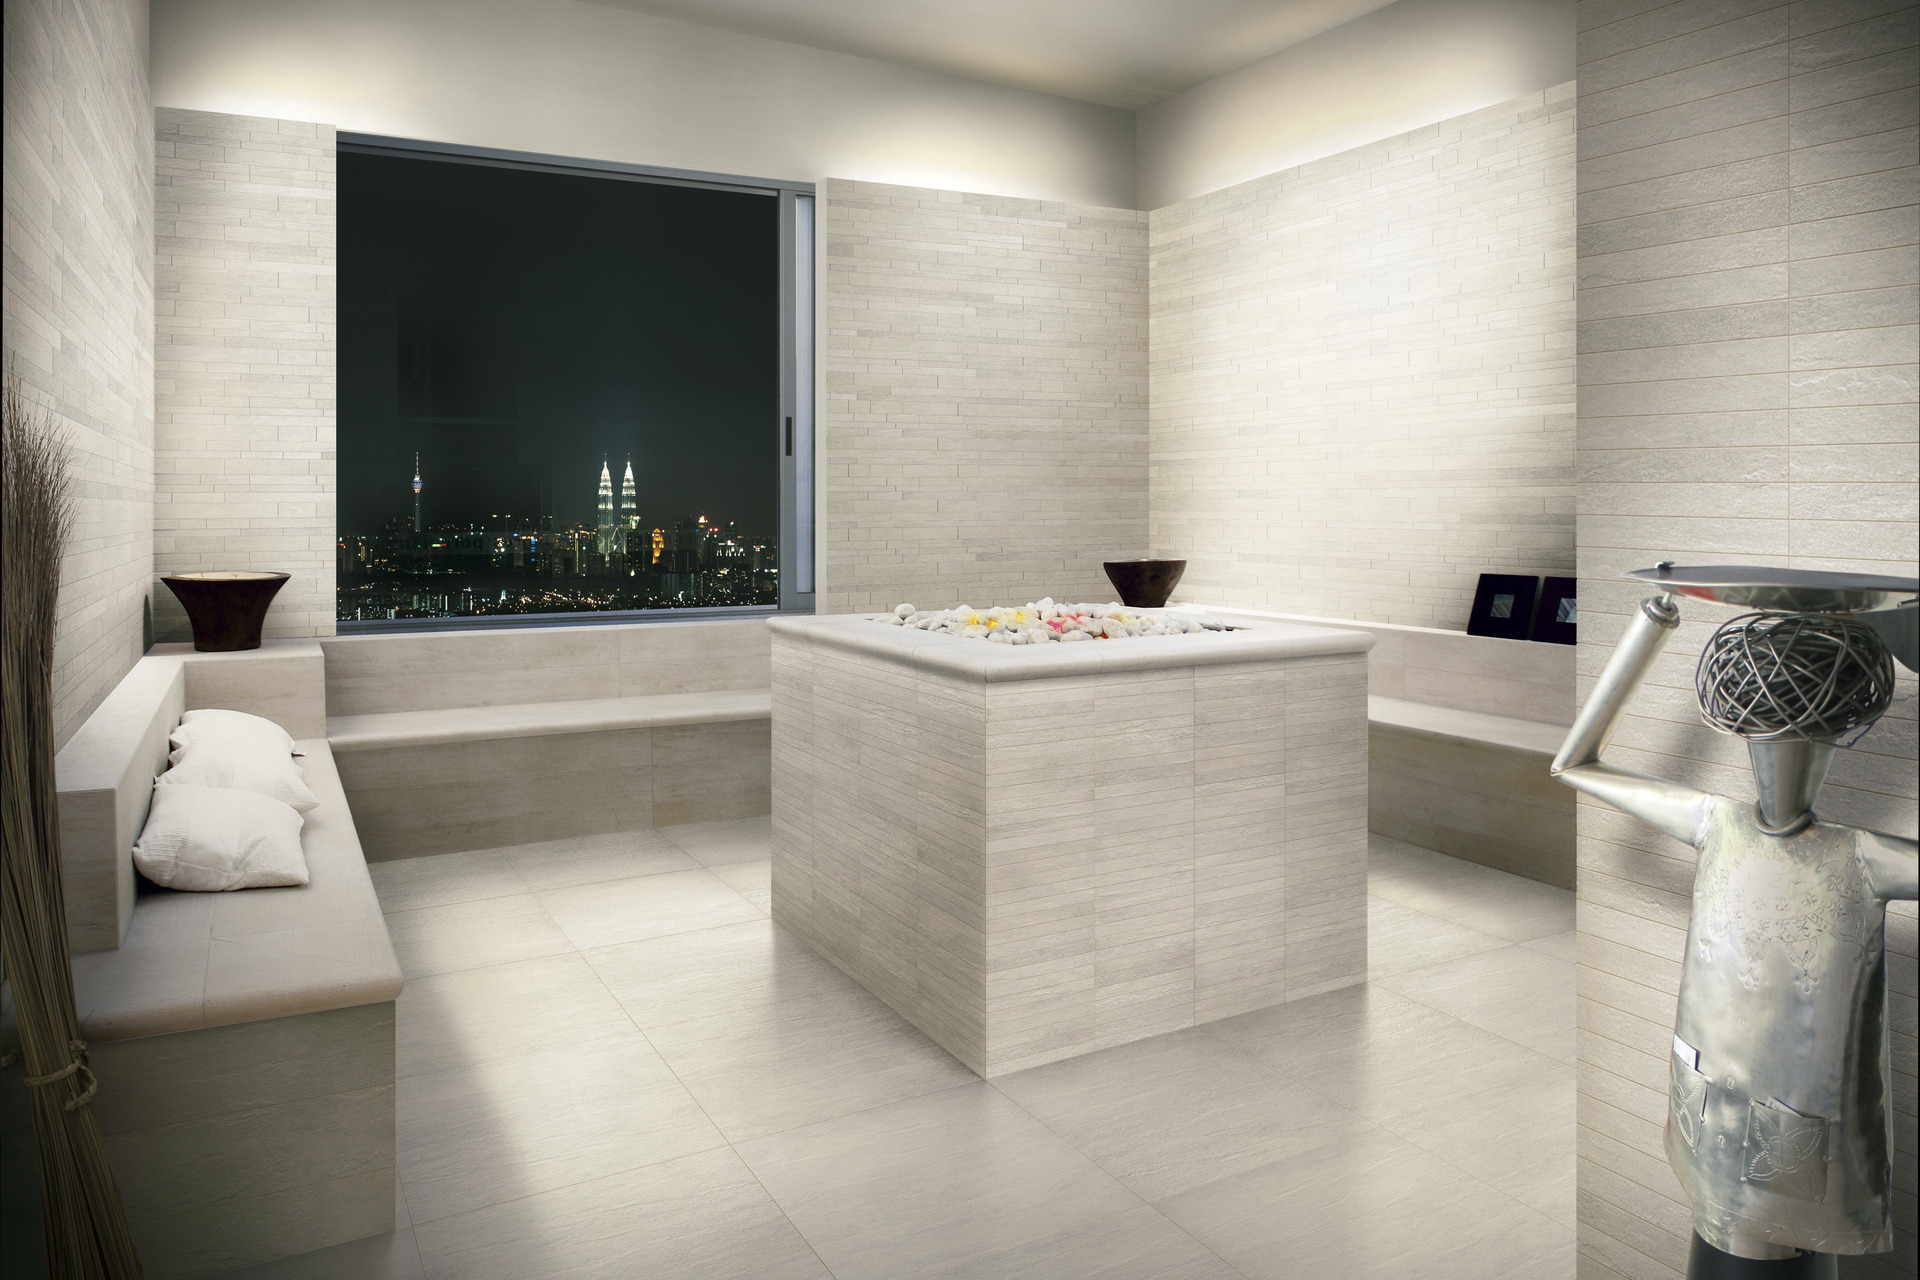 Stone Effect Porcelain Tiles - Quarzite Reale